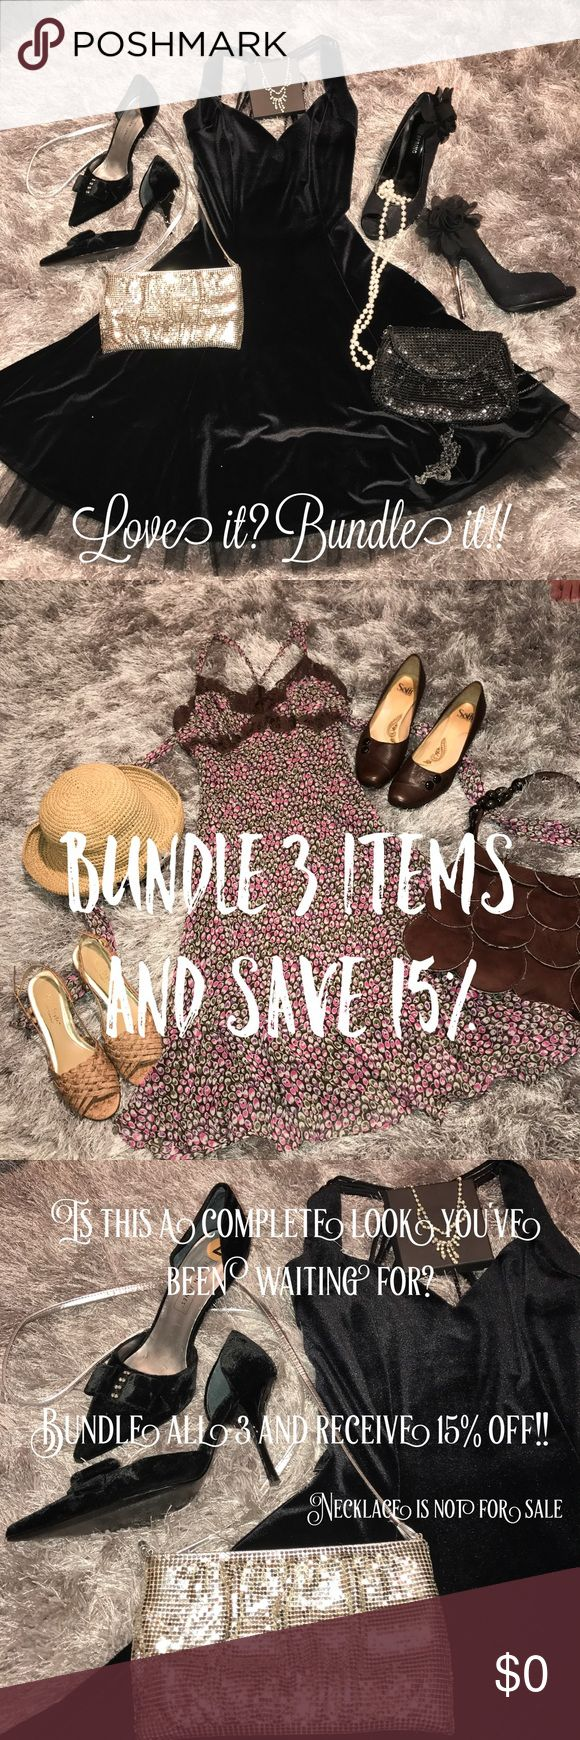 """Bundle three items or more and save 15% The only thing better than finding a new outfit is finding it on sale. Put together an entire look, or an entire wardrobe, and save 15%.  Click the hangar to go to the closet where you will find all of your """"liked"""" (I say it's love❤️) items. Click the bundle button under the items you would like to purchase to add them to your bundle. Check out your savings! Orders over 5 pounds will need to be broken up into 2 orders. Other"""